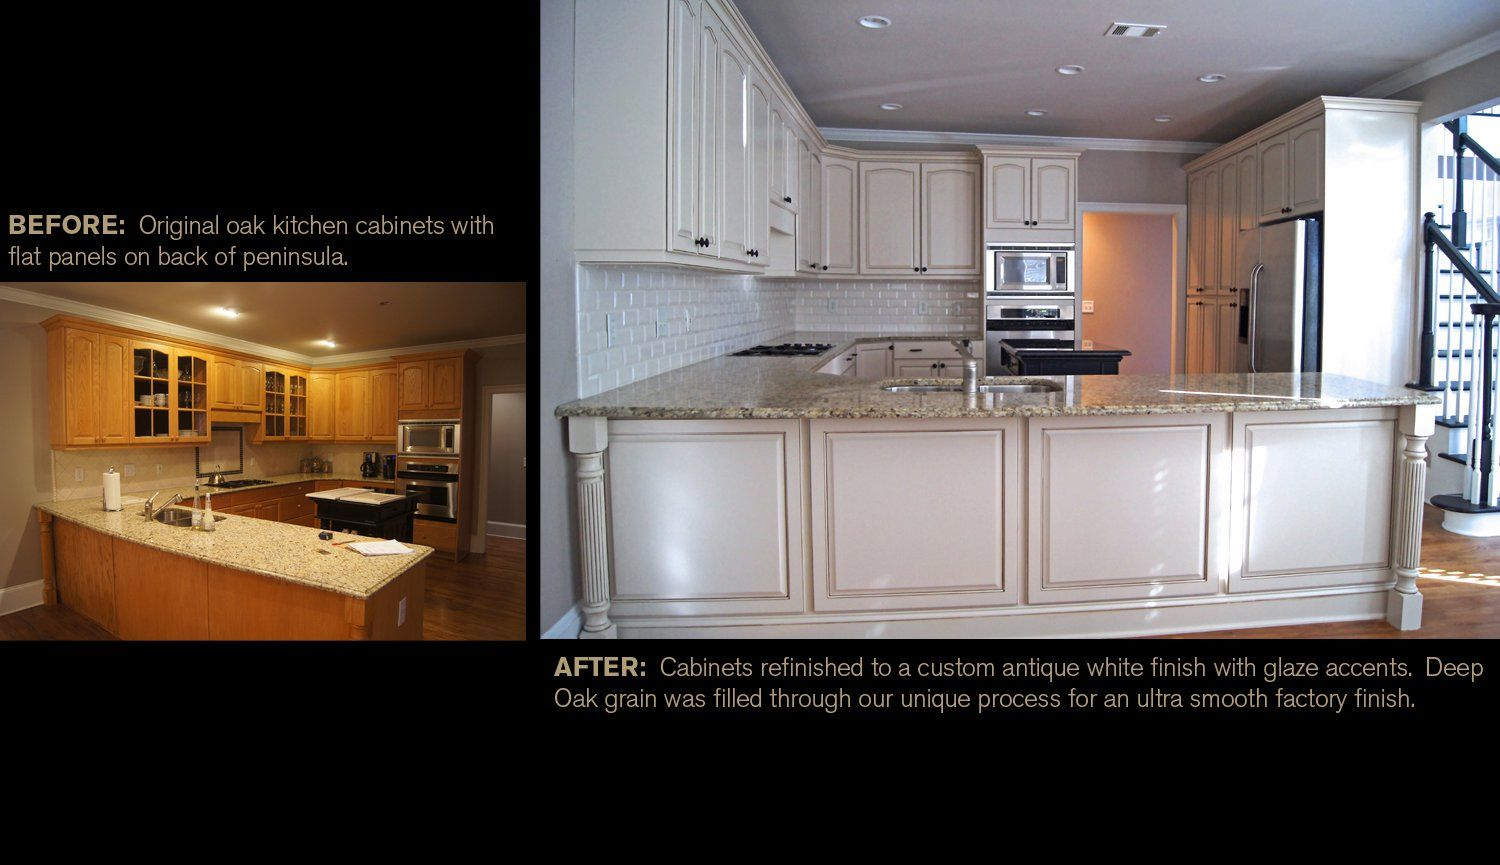 Creative Cabinets AndFaux Finishes, LLC (CCFF)   Before And After Faux  Refinishing Picture